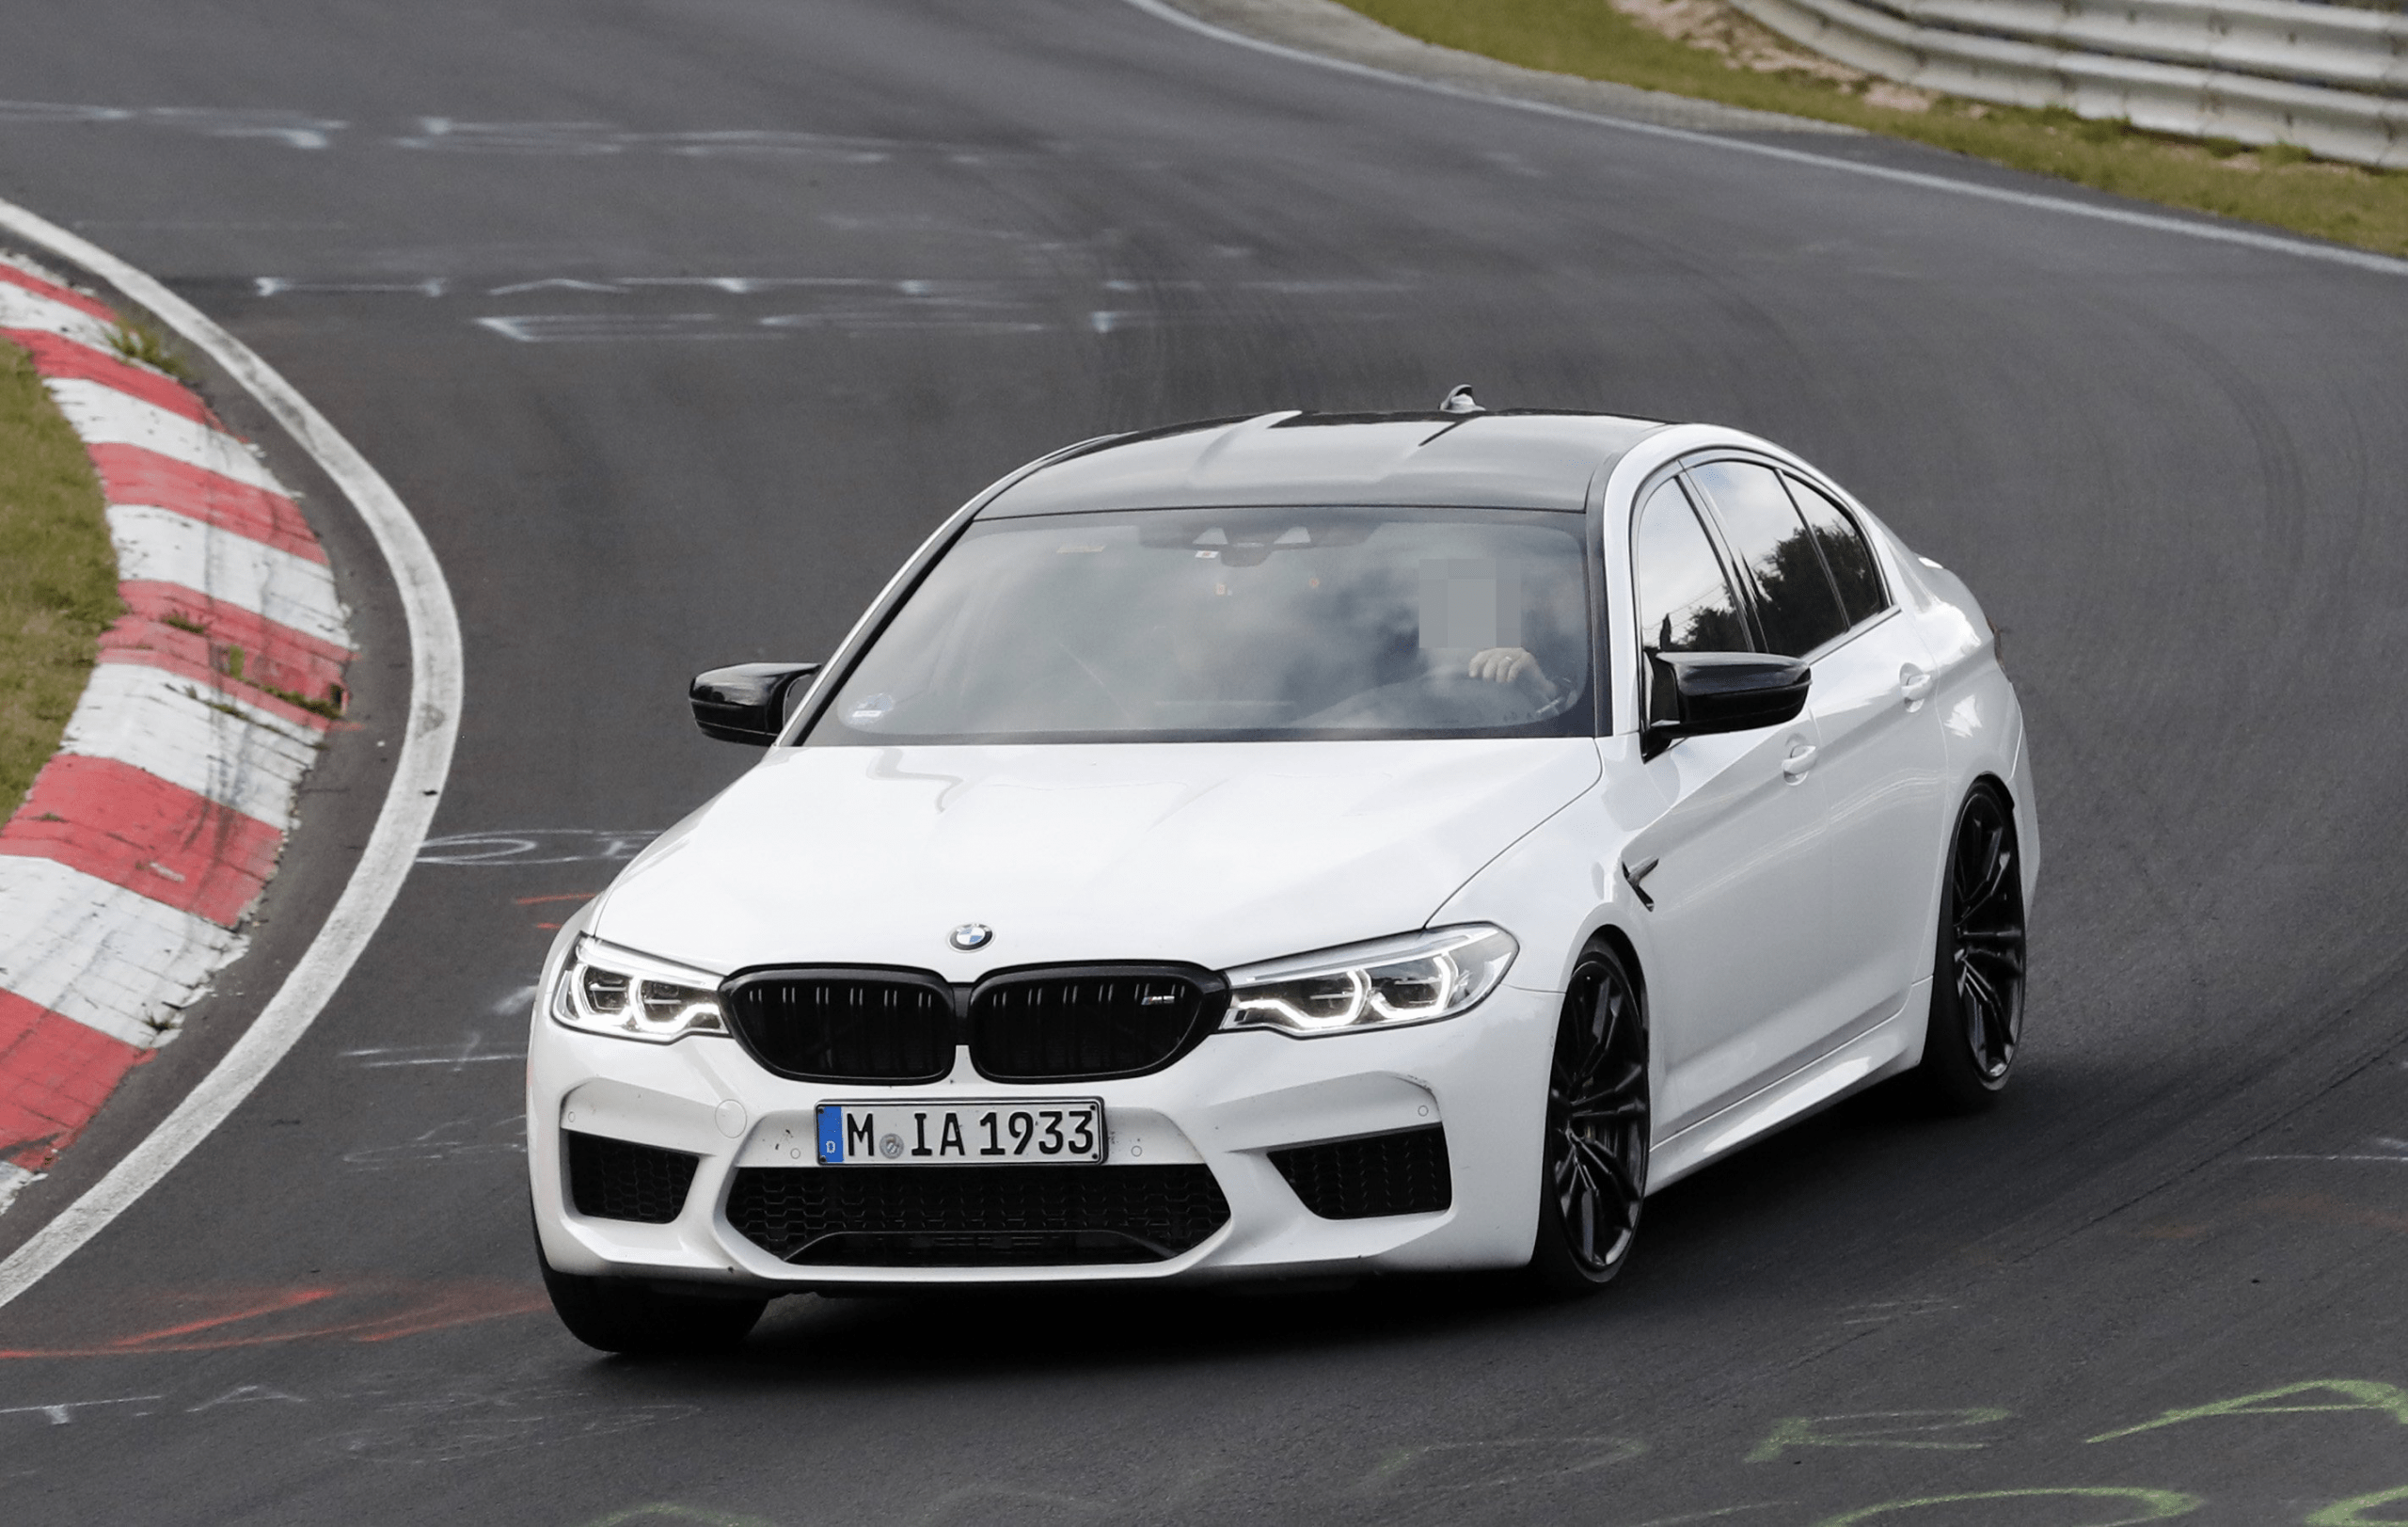 2020 BMW M5 Xdrive Awd Exterior and Interior